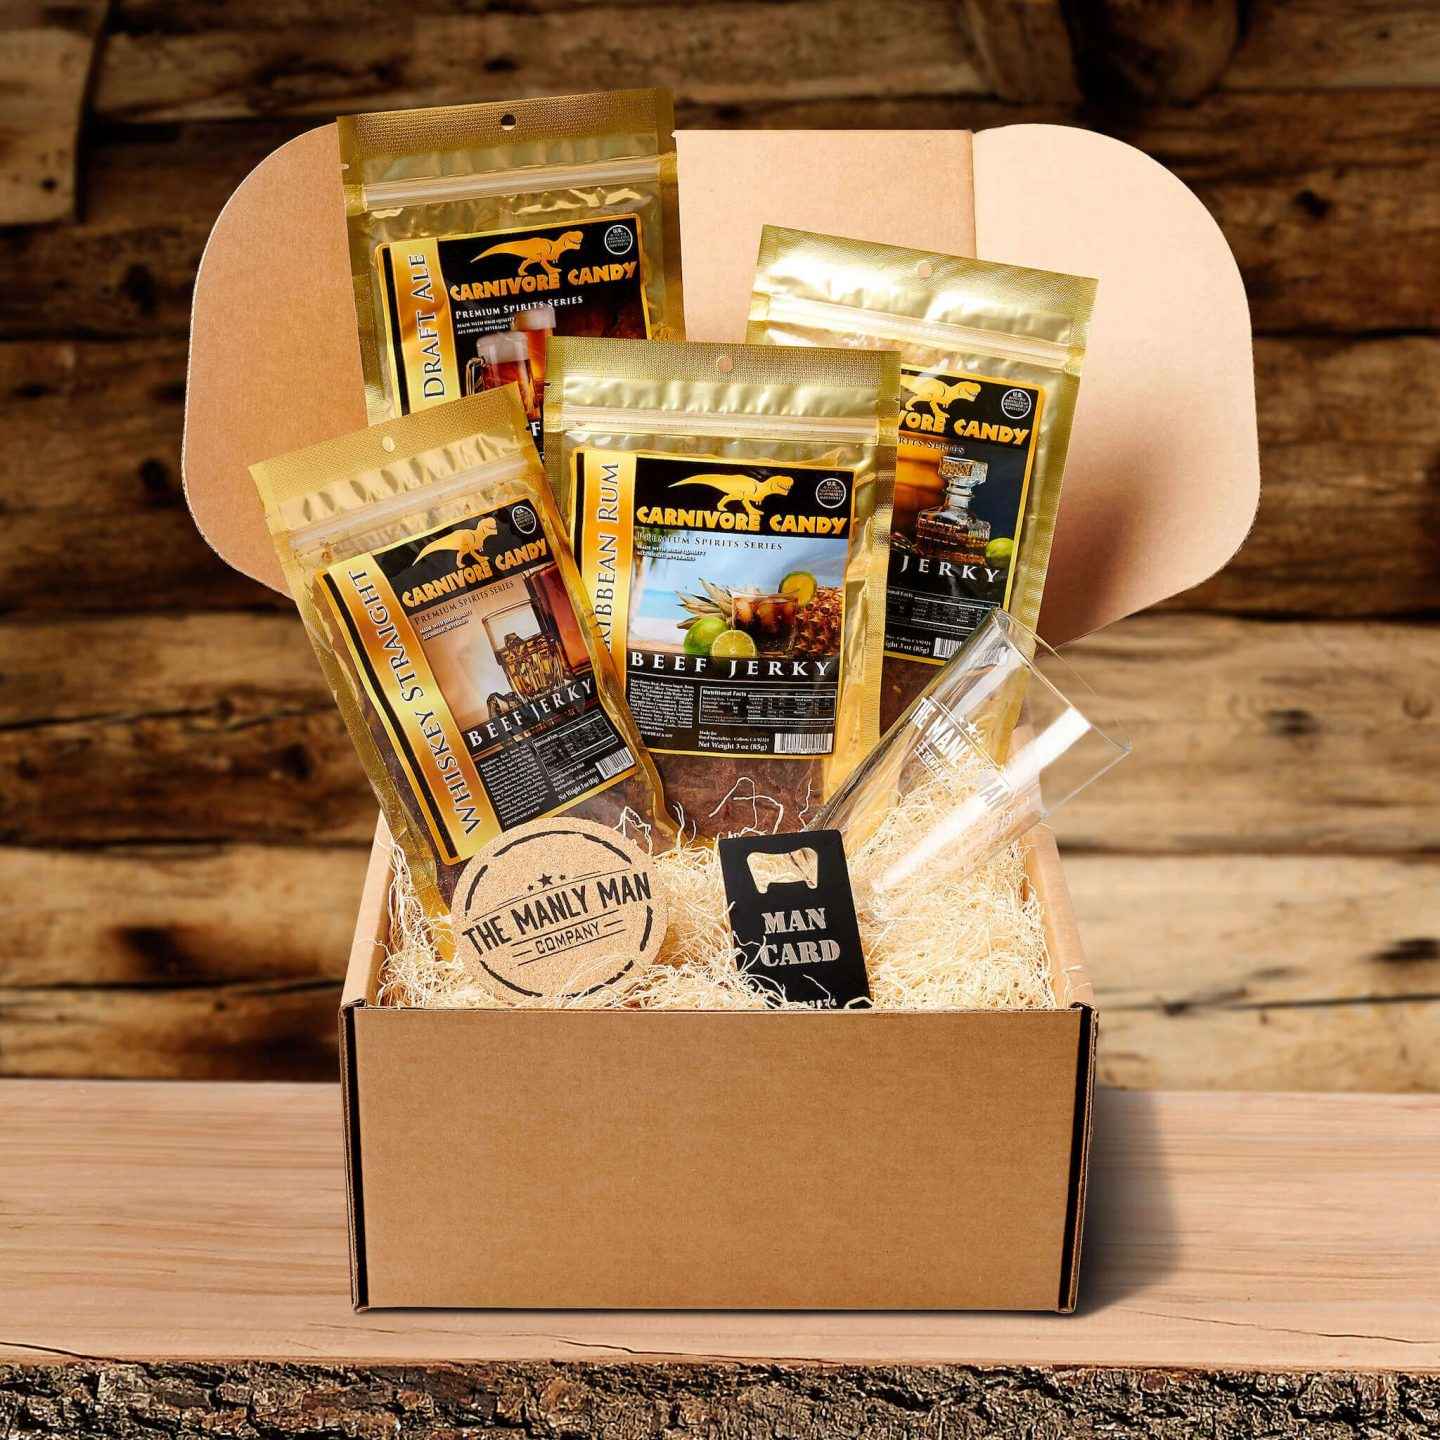 The Manly Man giftbox